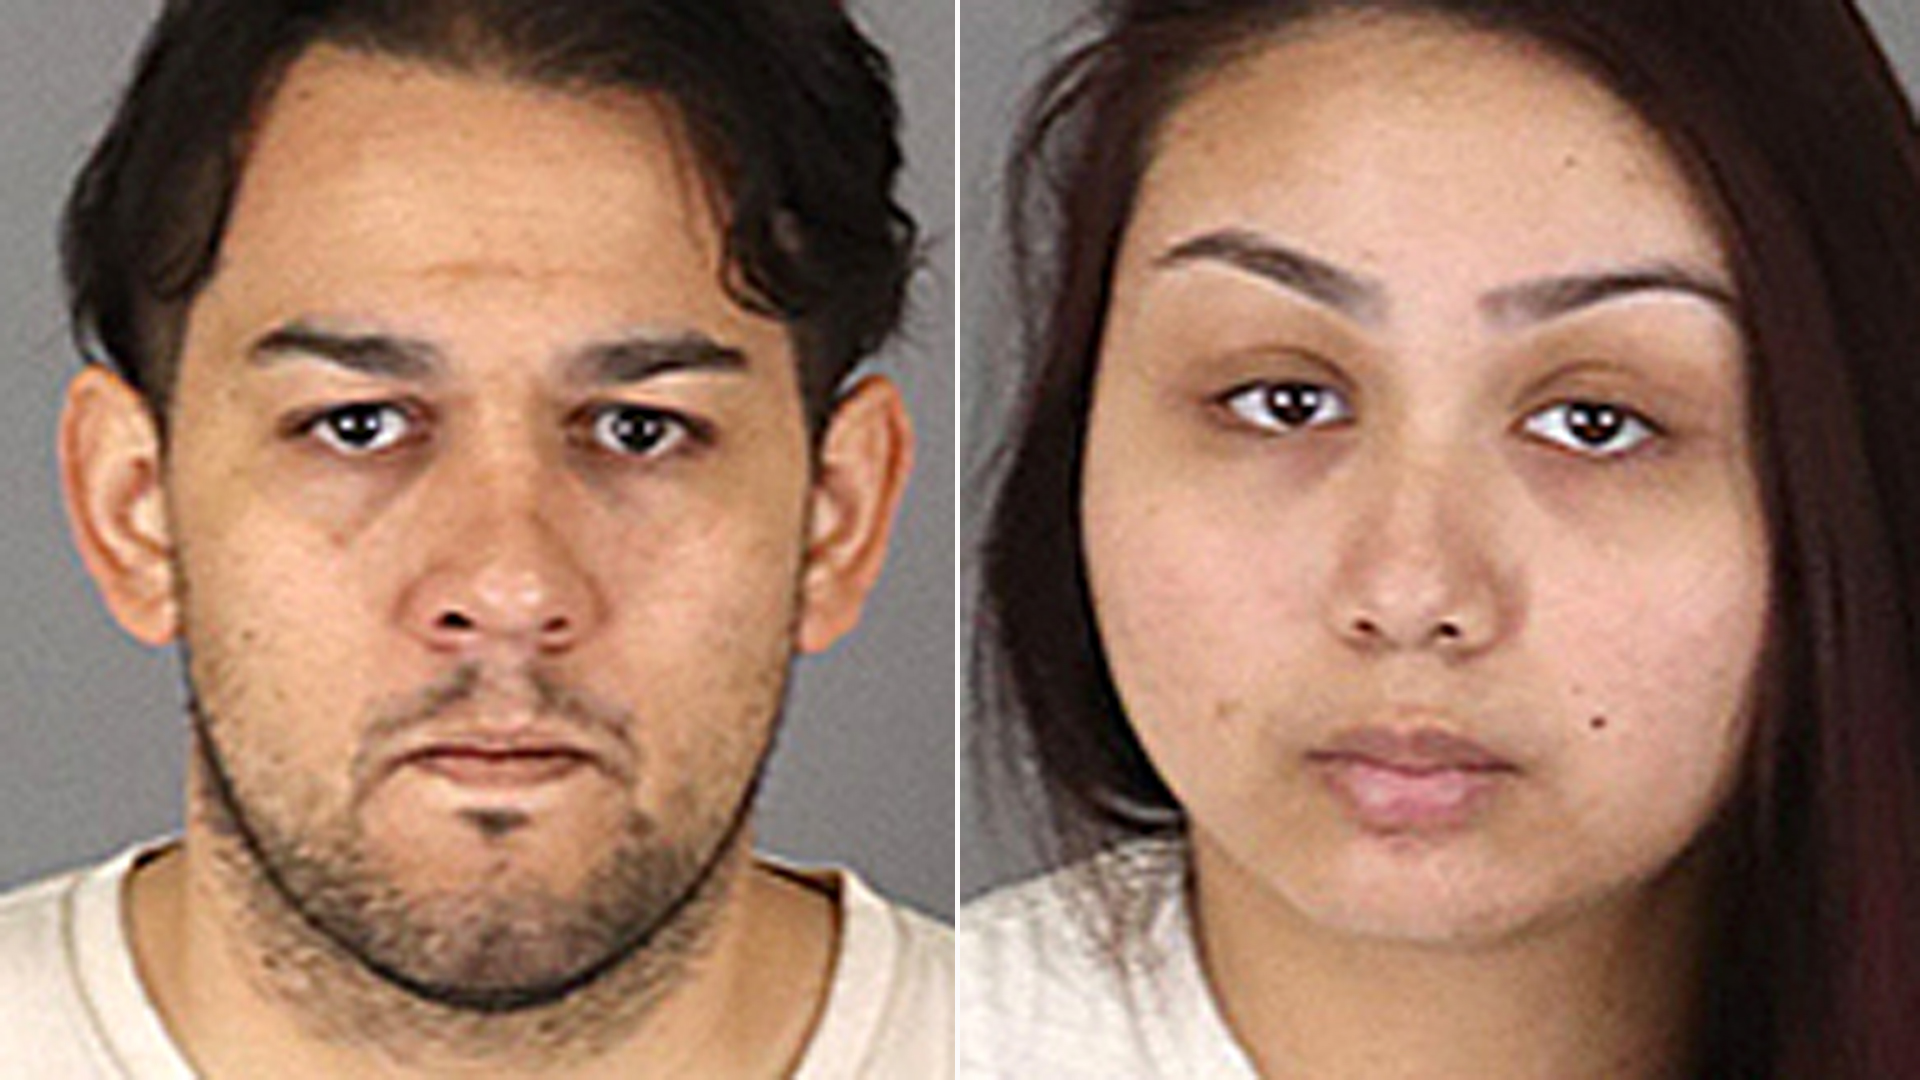 Gregory Brandt (L) and Jasmine Rugga are seen in images provided by the Menifee Police Department.